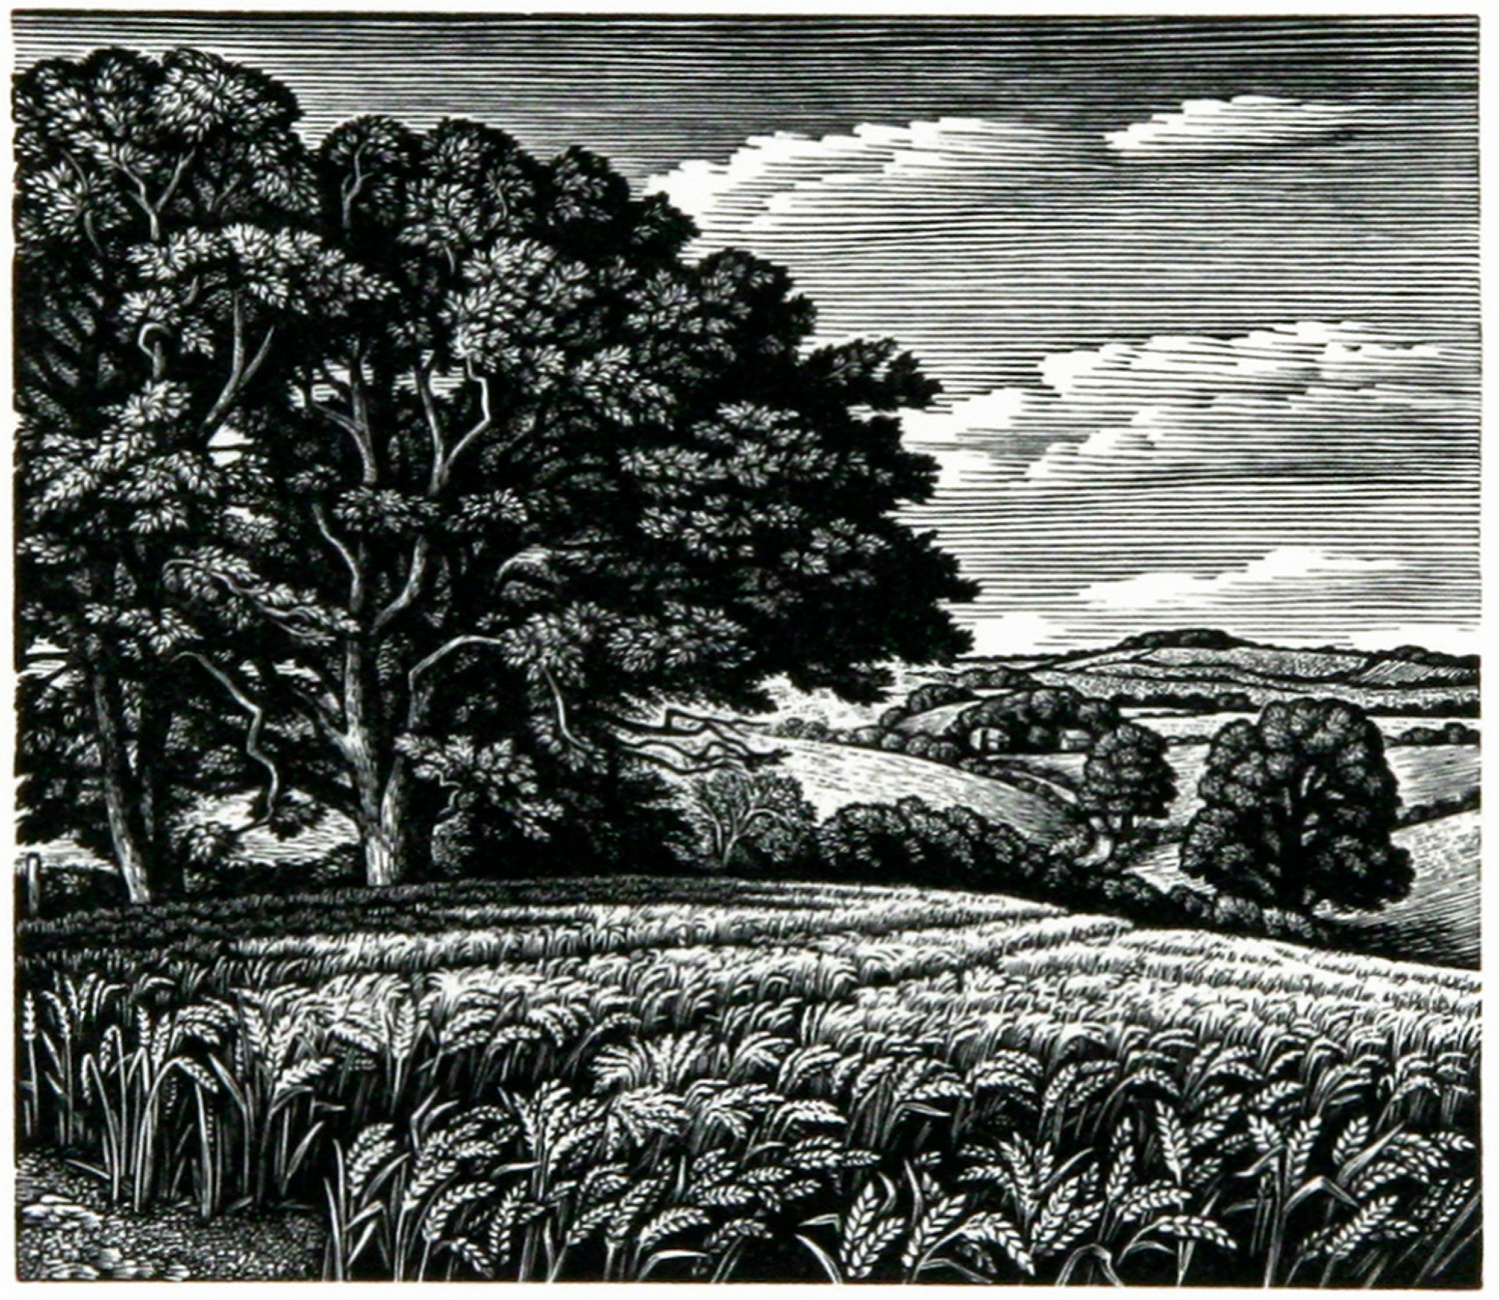 Clearbury Ring from Tower House Meadow by Howard Phipps